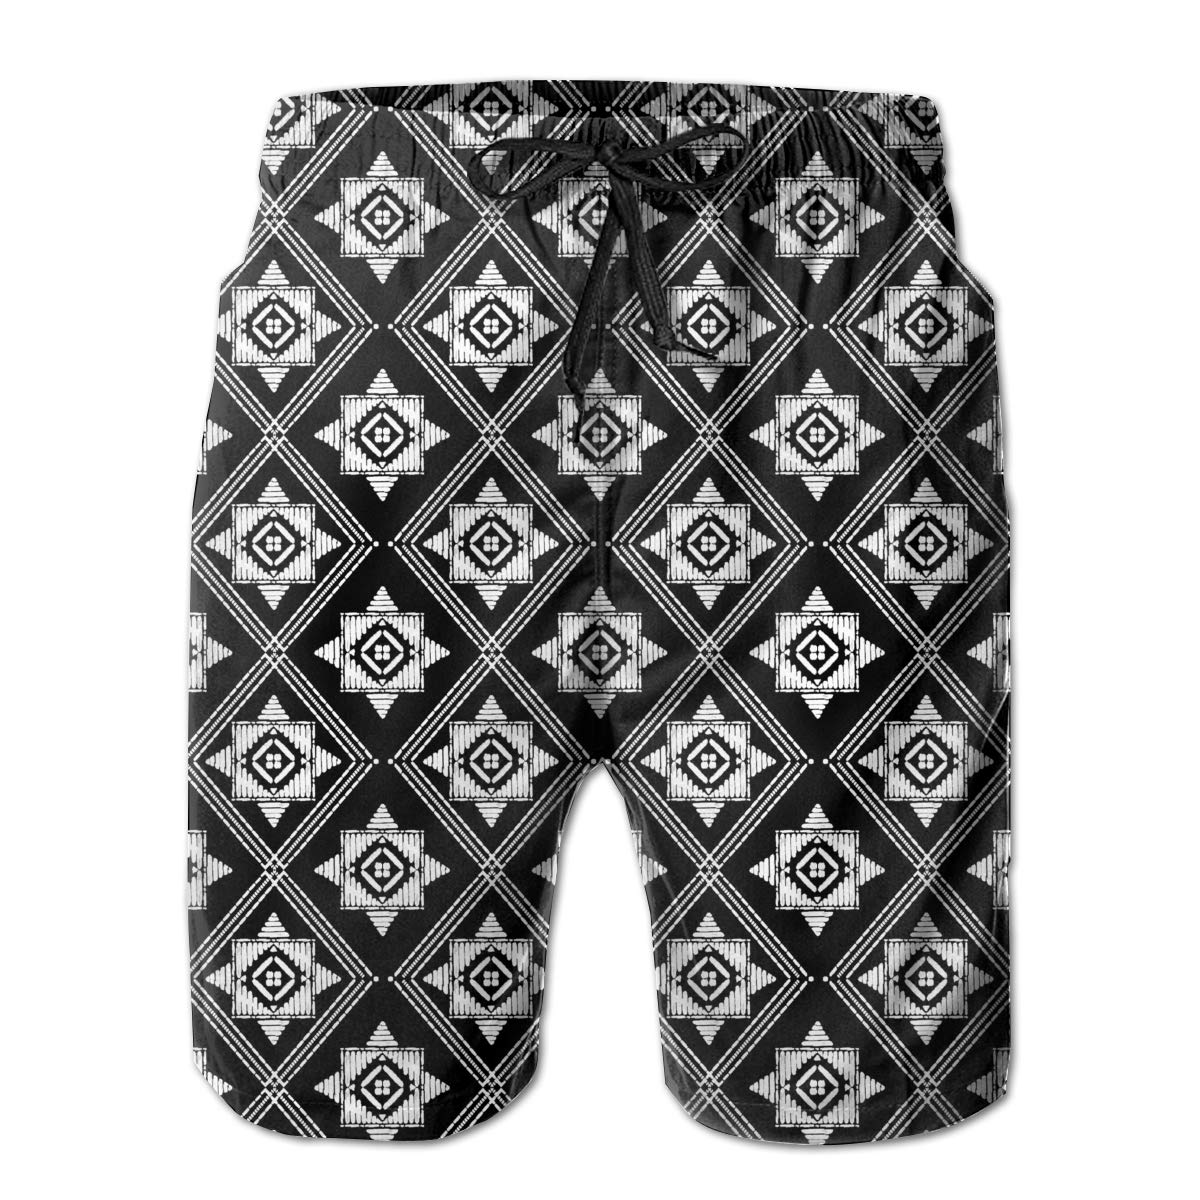 Polyester Aztec Pattern Board Shorts with Pockets Mens Casual Swim Trunks